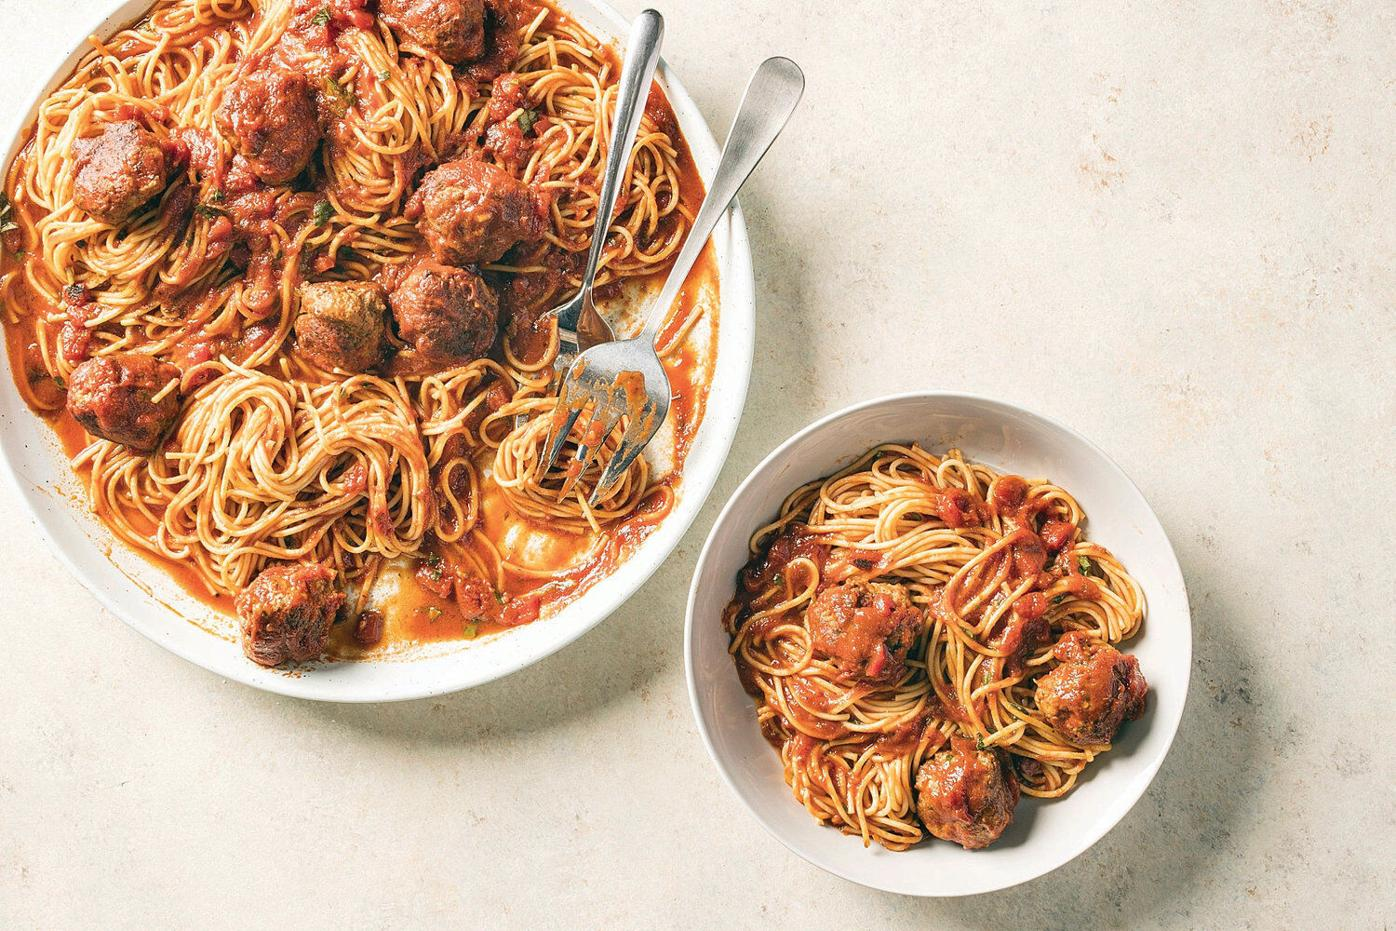 Classic meatballs in marinara - with no mess